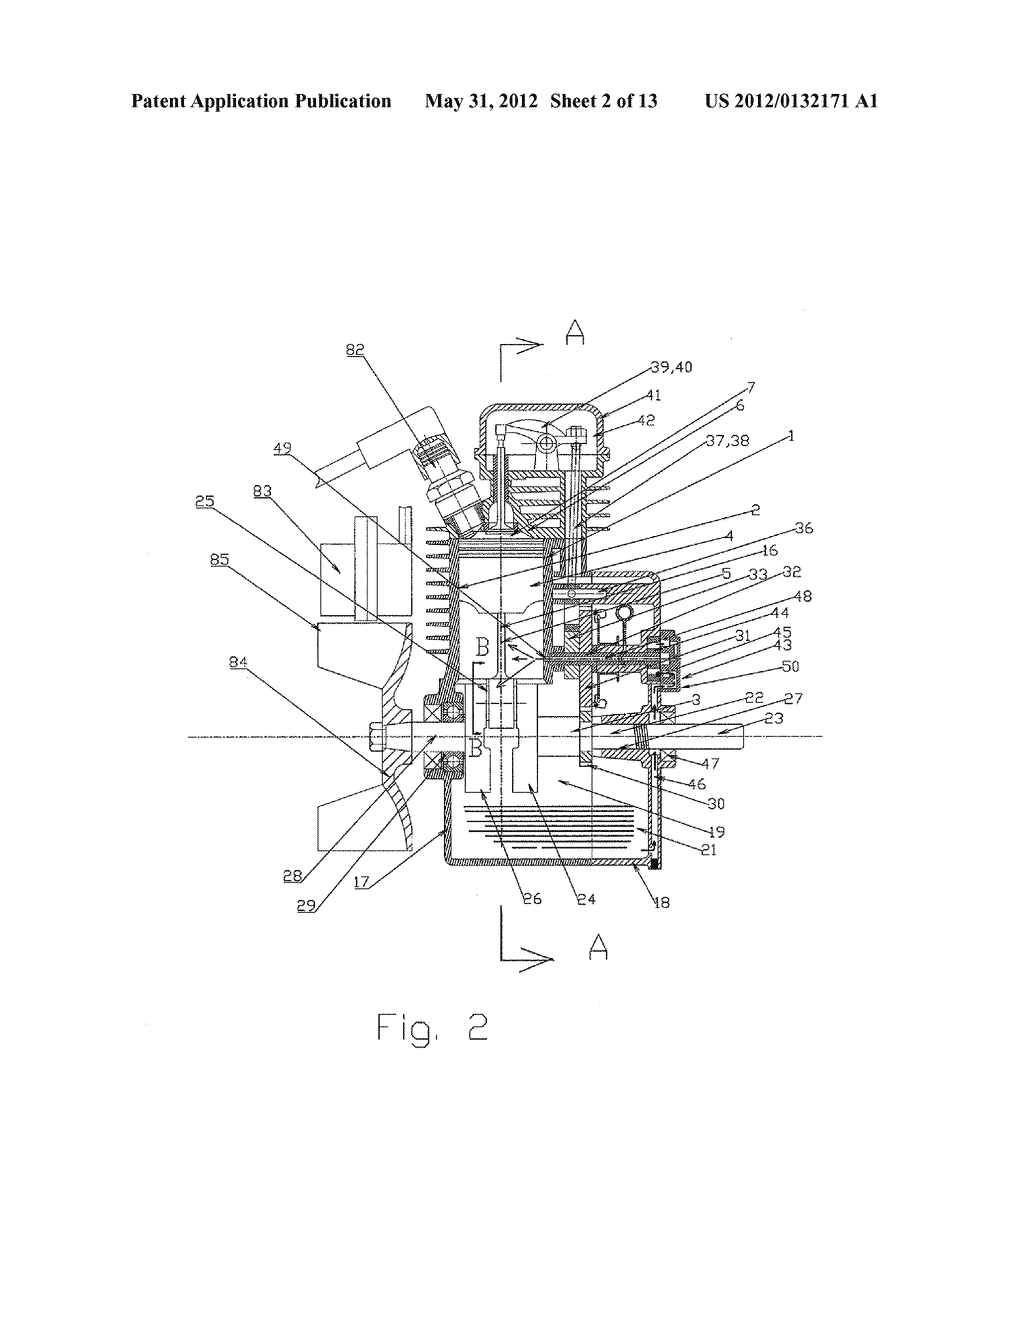 Vertical Engine Diagram Experts Of Wiring 19 Hp Kawasaki Wire And Horizontal Schematic Image 03 Rh Patentsencyclopedia Com Line